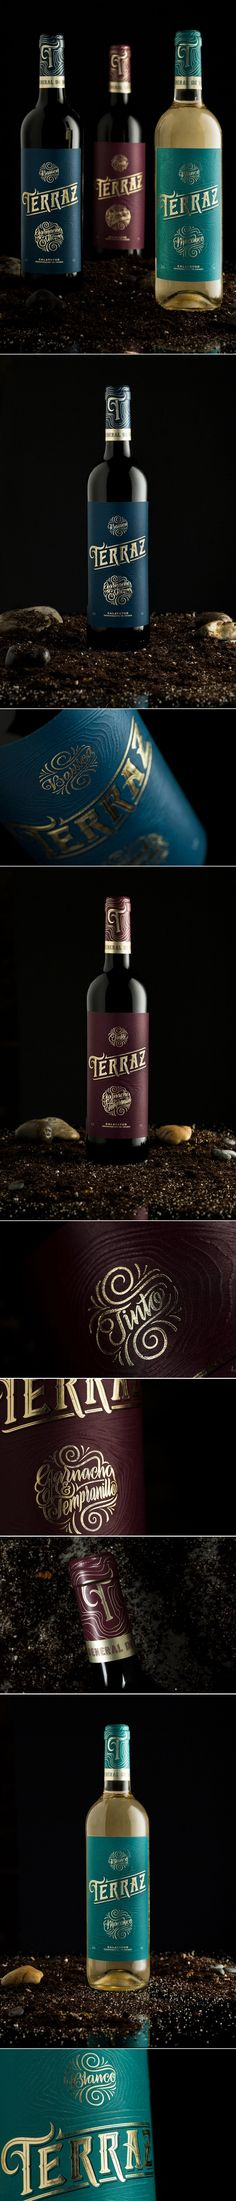 Terraz Wine Celebrates Its Origins With Its Packaging — The Dieline | Packaging & Branding Design & Innovation News